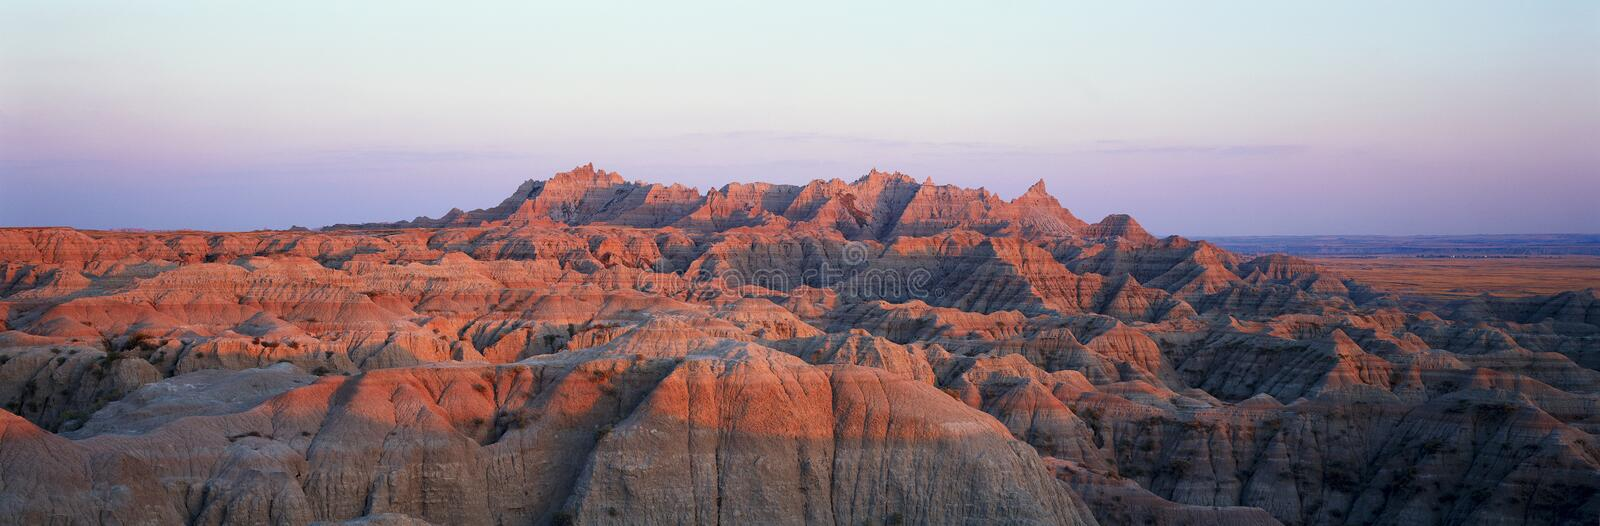 Sunset panoramic view of mountains in Badlands National Park in South Dakota royalty free stock images